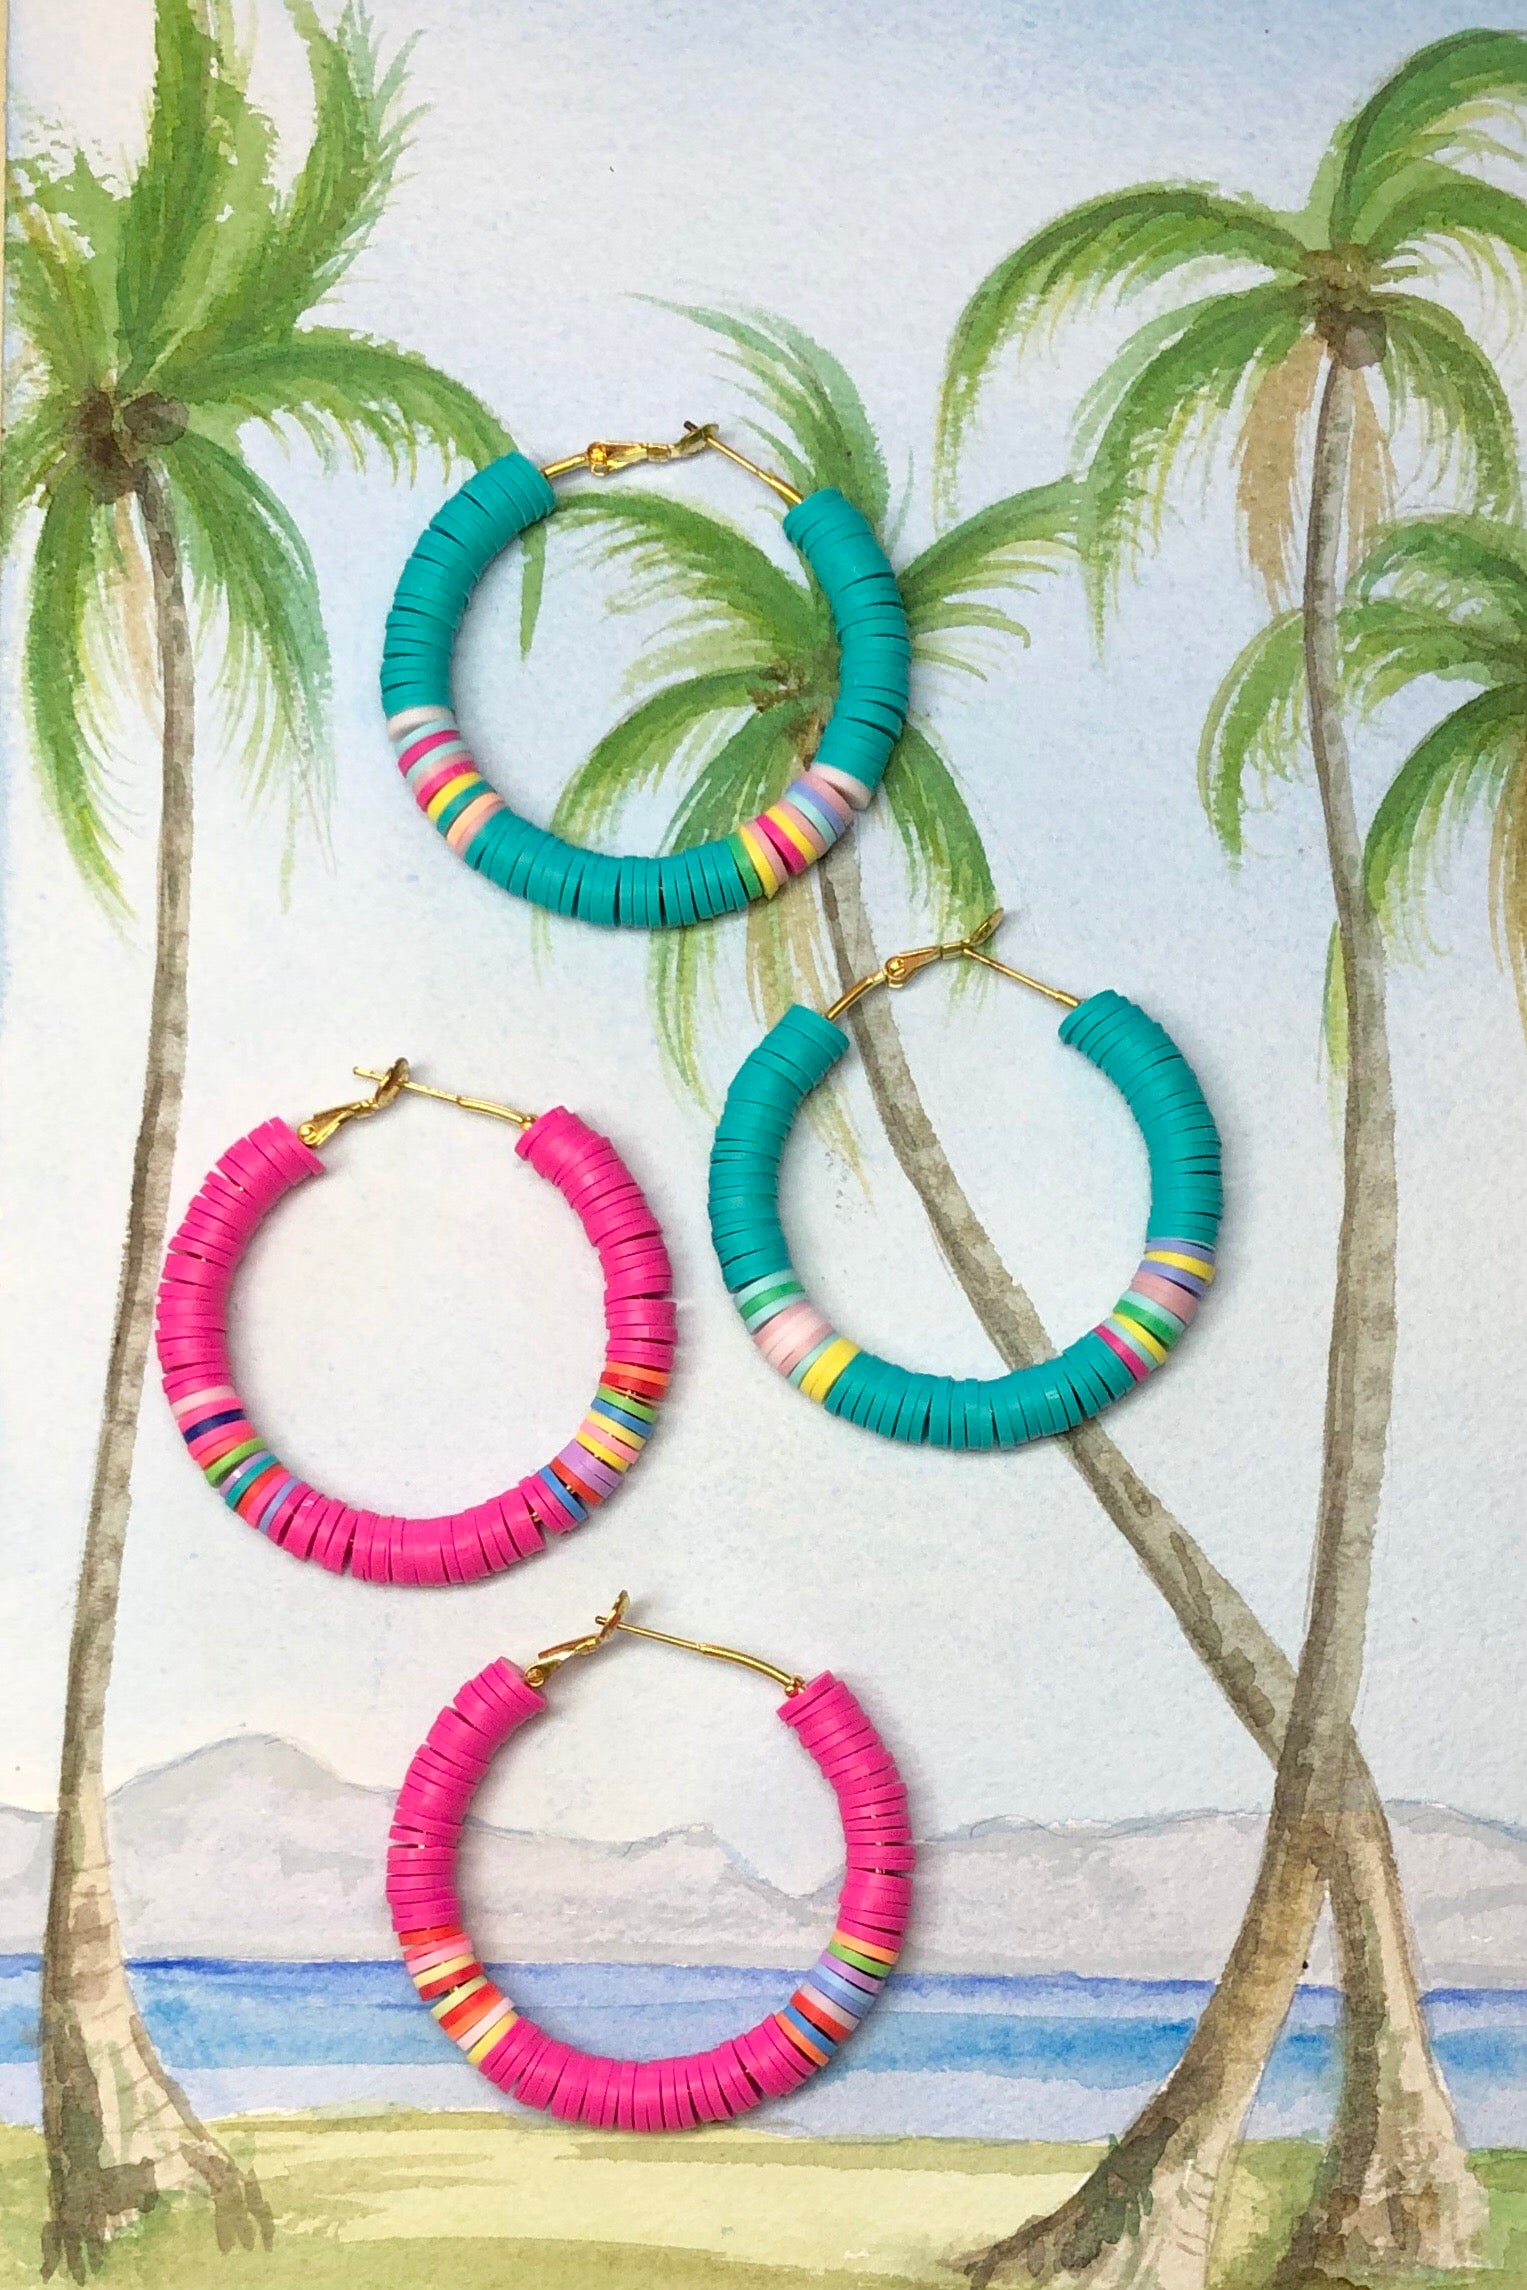 Our Summer hula hoop is made with heishi style beads in amazing fun bright colours, really cool and island styled